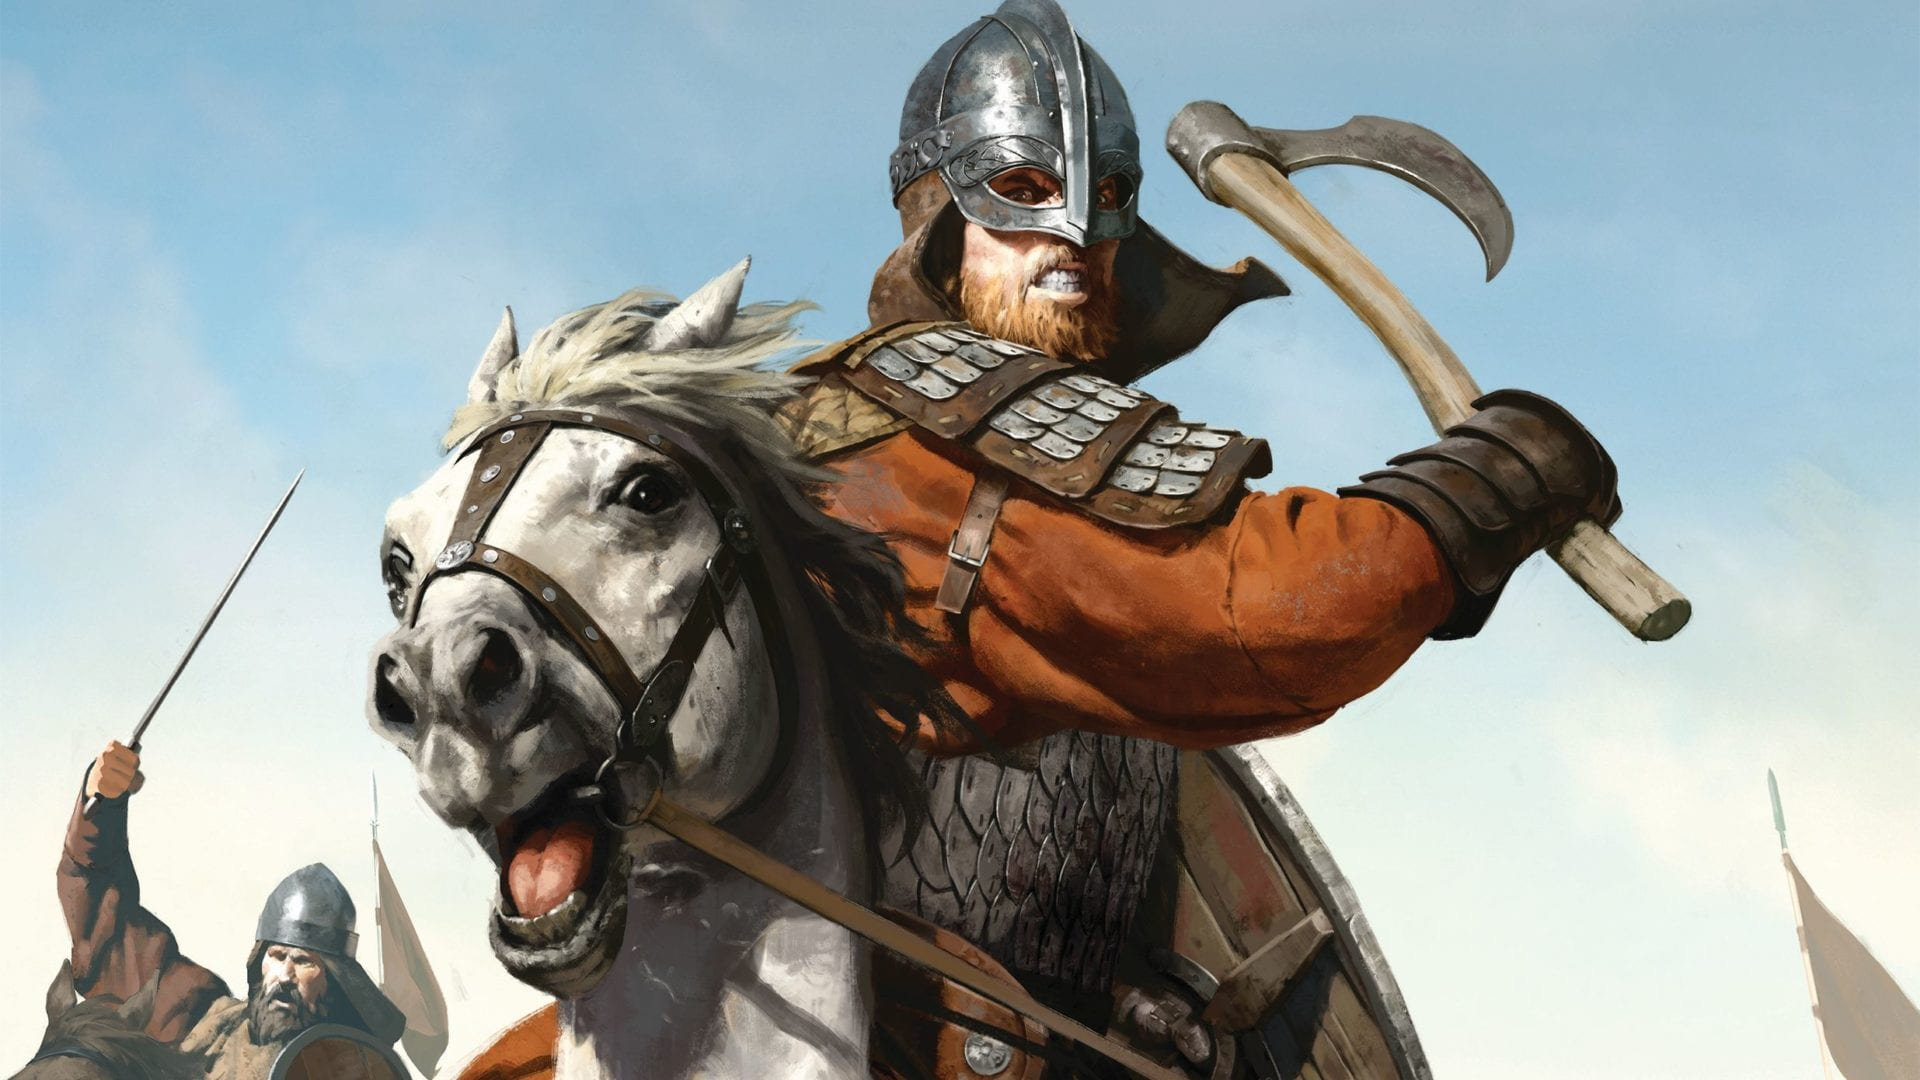 mount & blade 2, bannerlord, renown